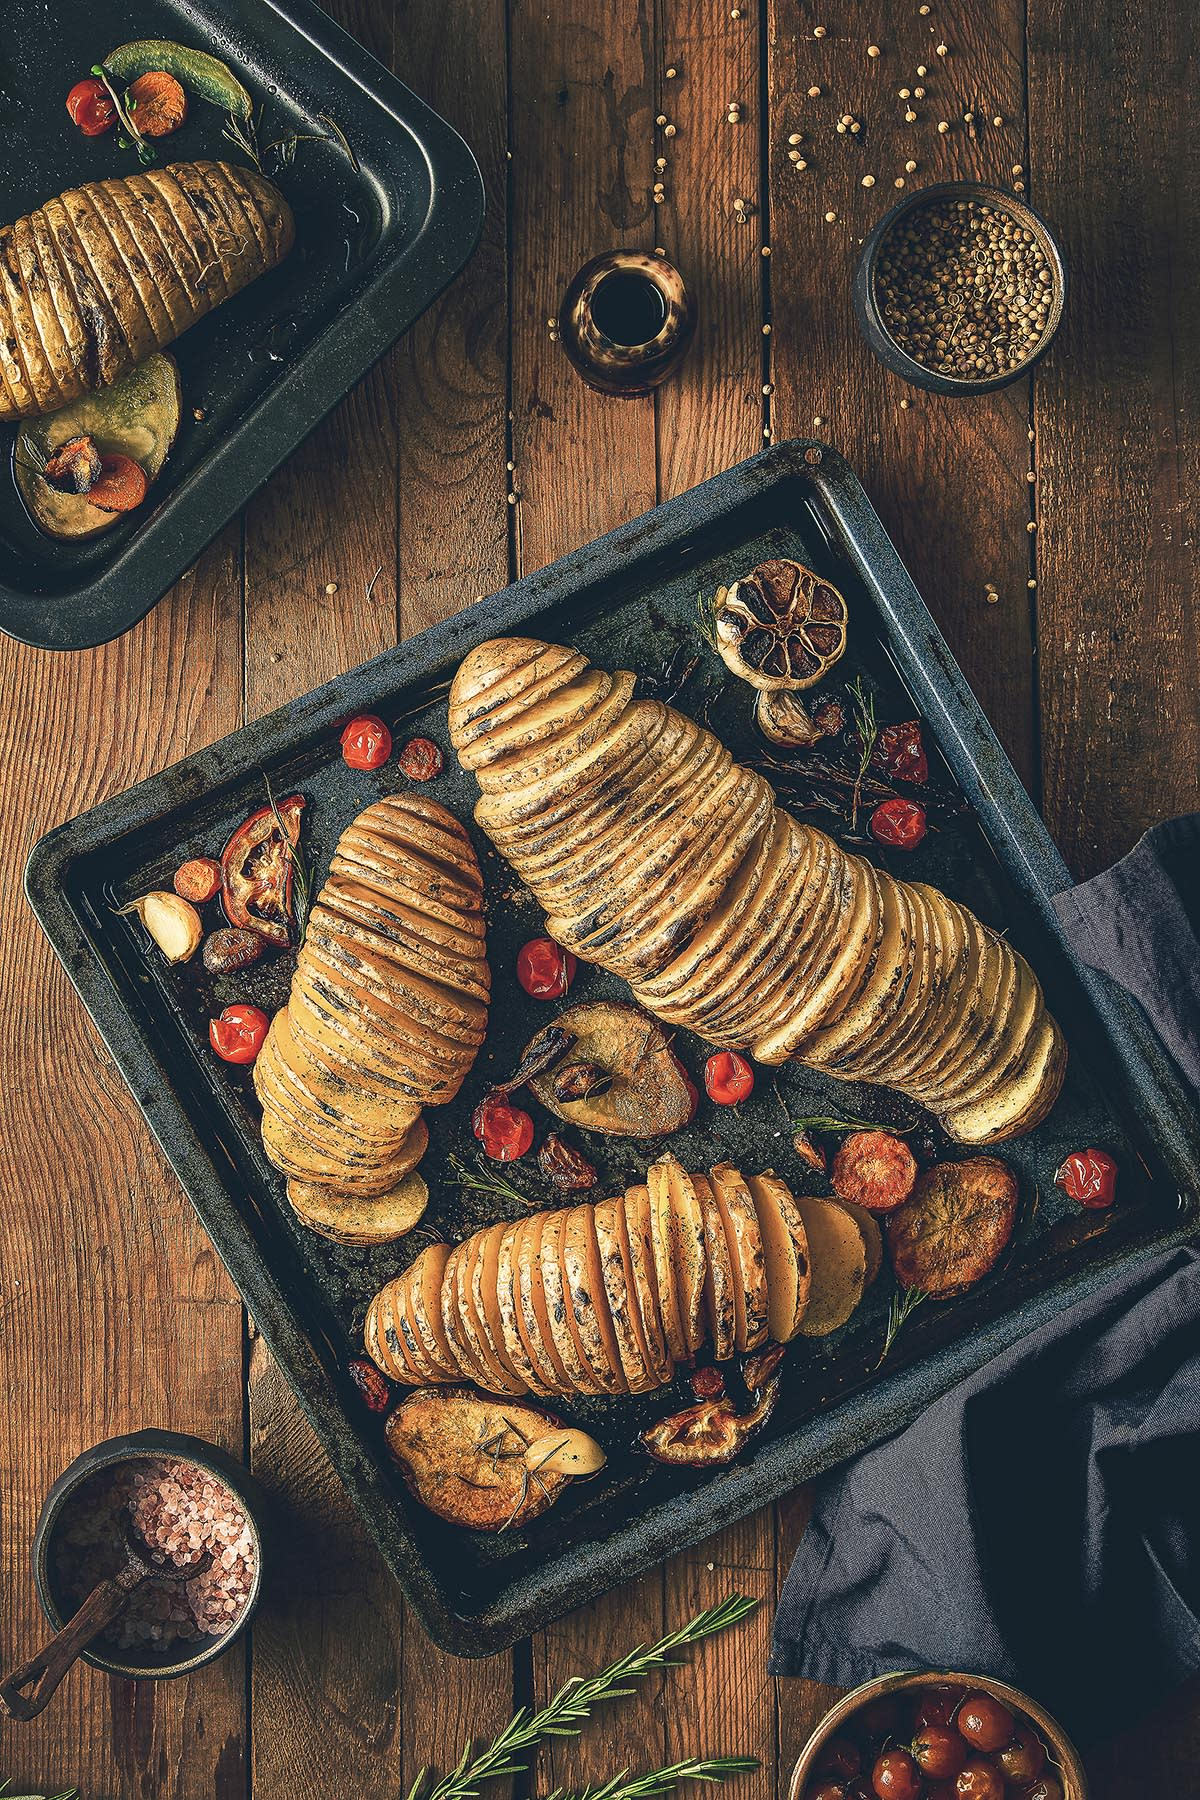 Roasted Potatoes - Food photography - Mohamed Abdel-Hady Photography